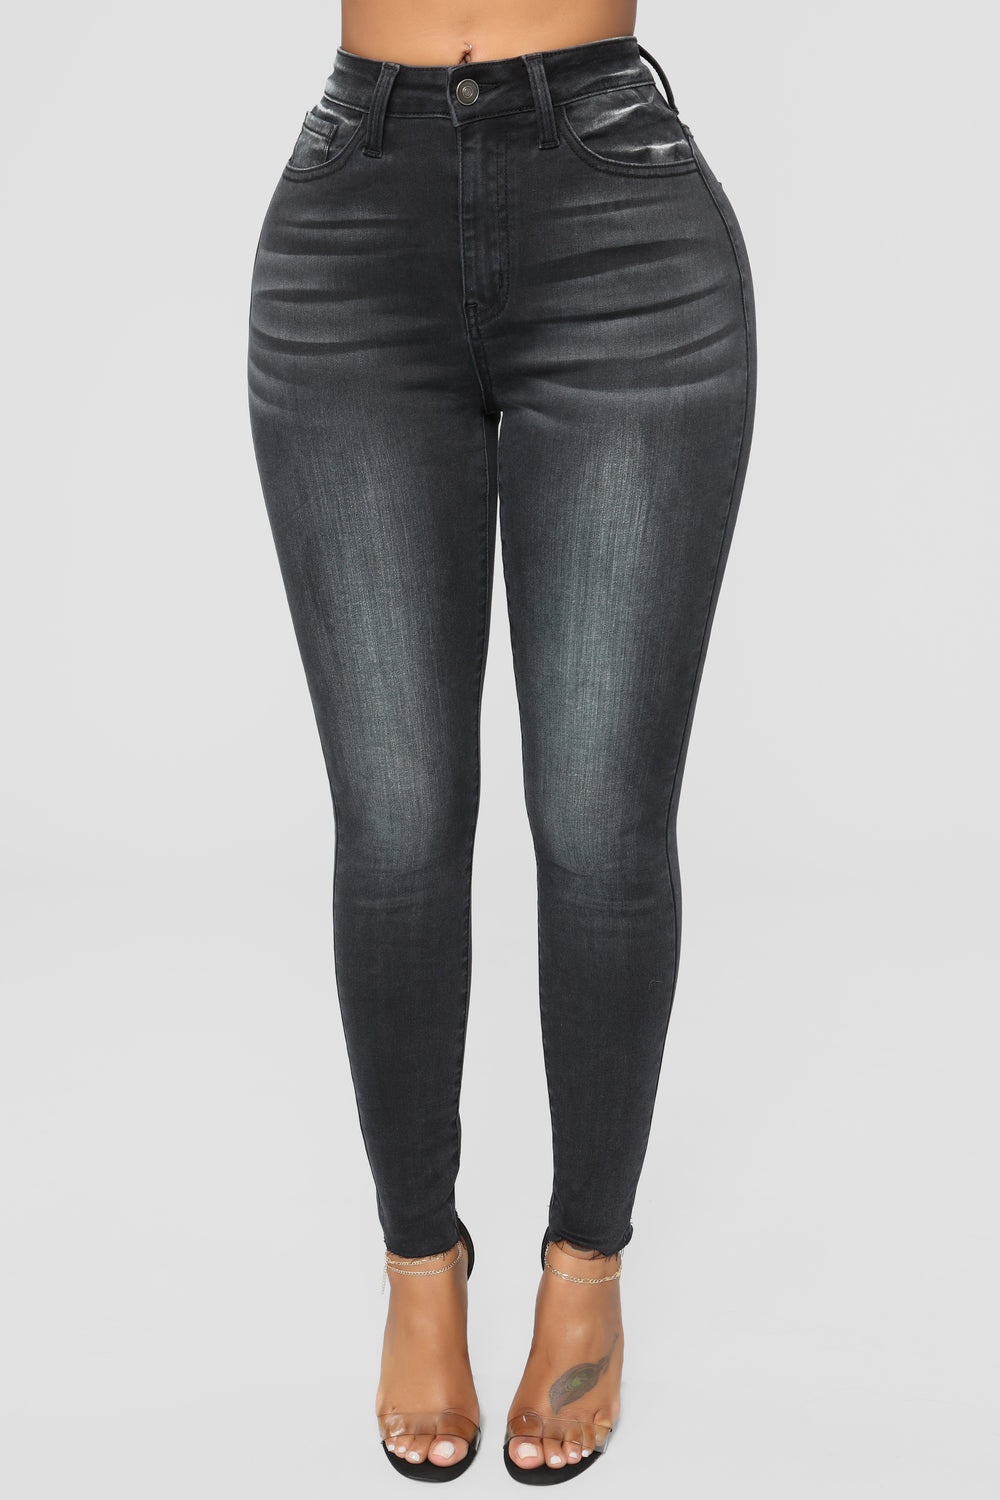 More To See High Rise Jeans - Black